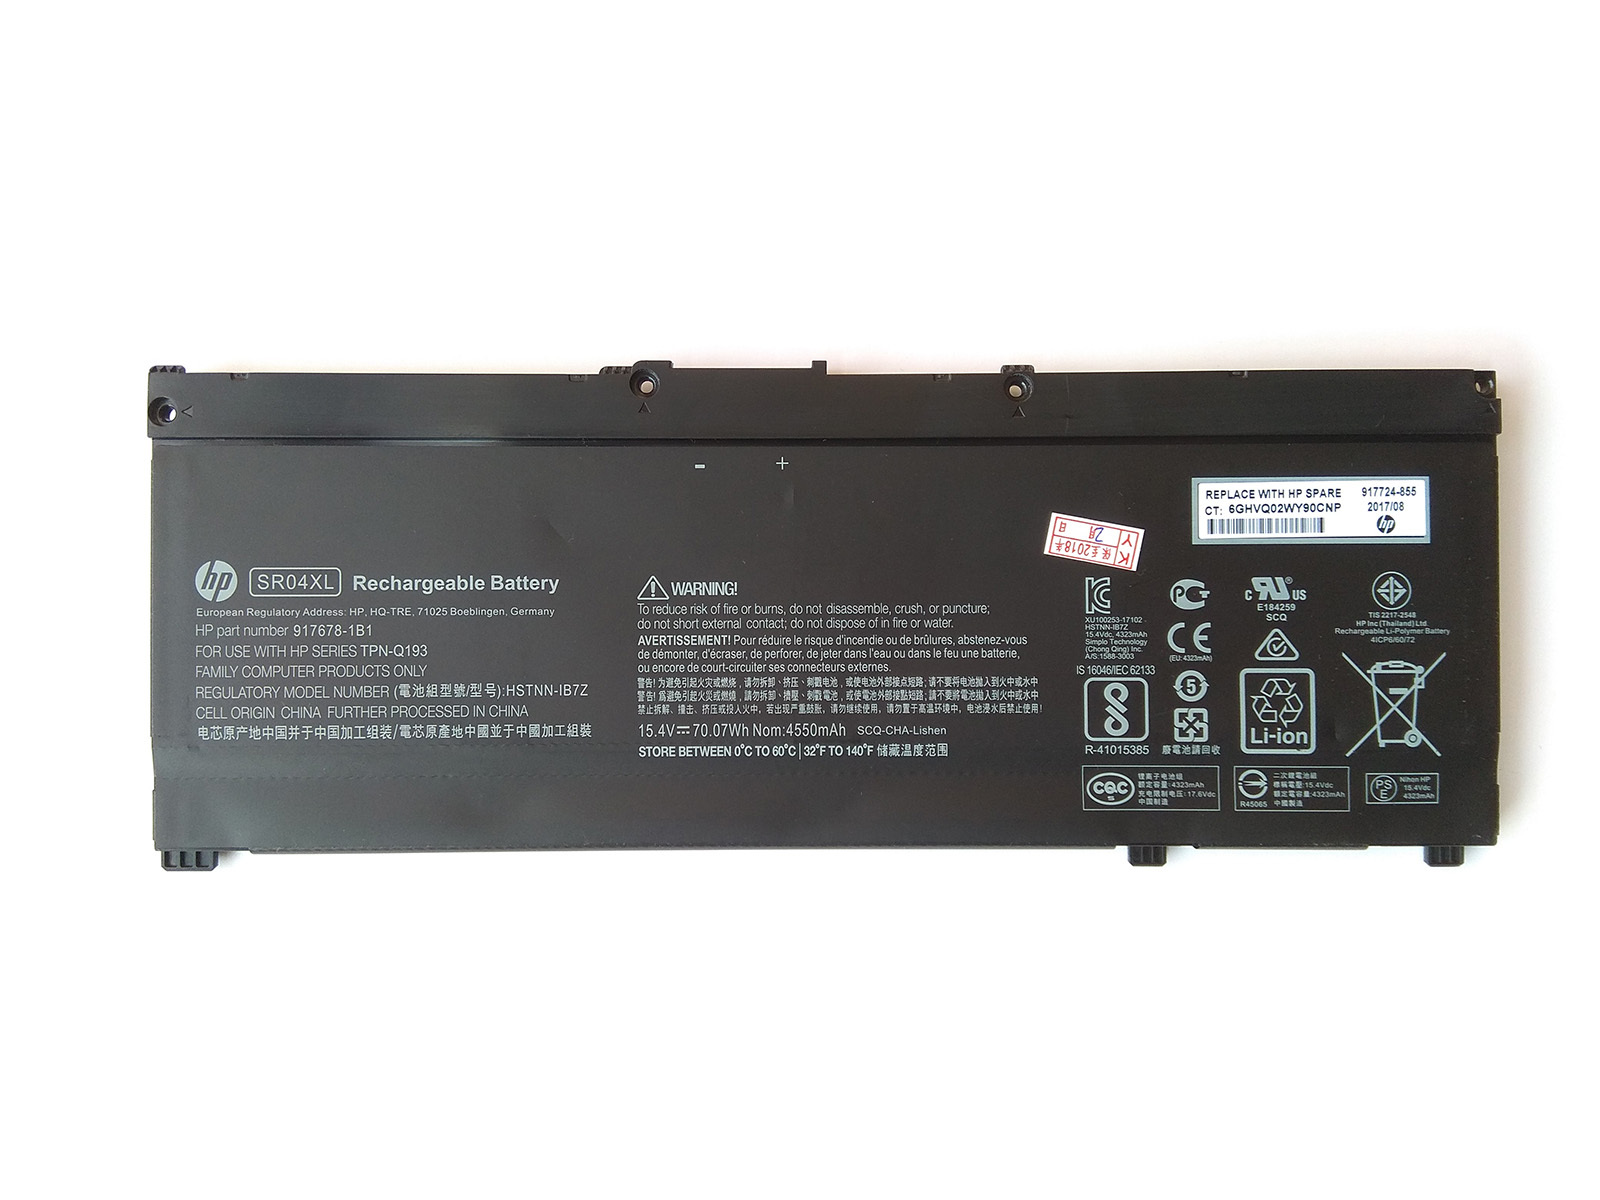 Primary image for HP Omen 15-CE000NP 2CU33EA Battery SR04XL 917724-855 TPN-Q193